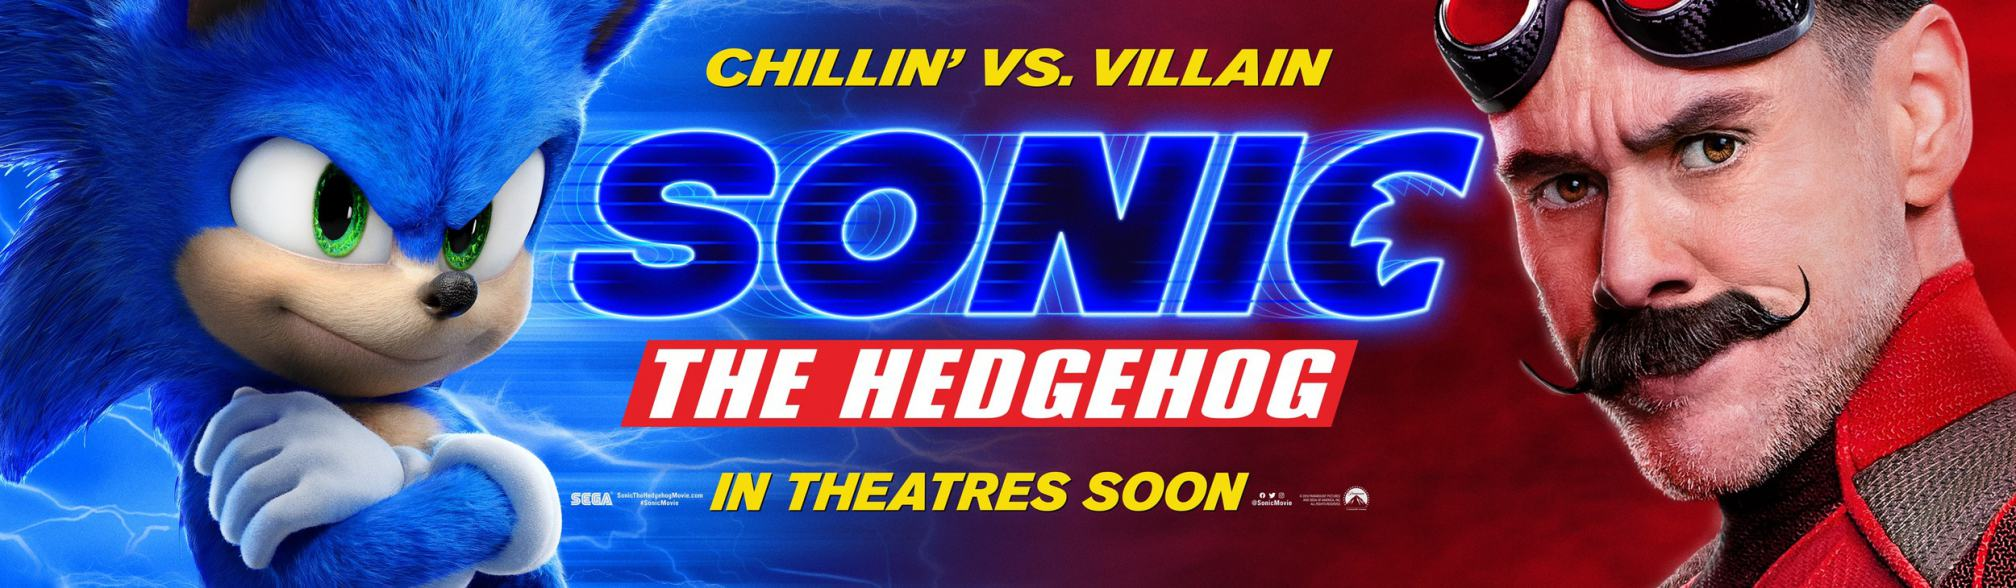 Sonic the Hedgehog Poster #3